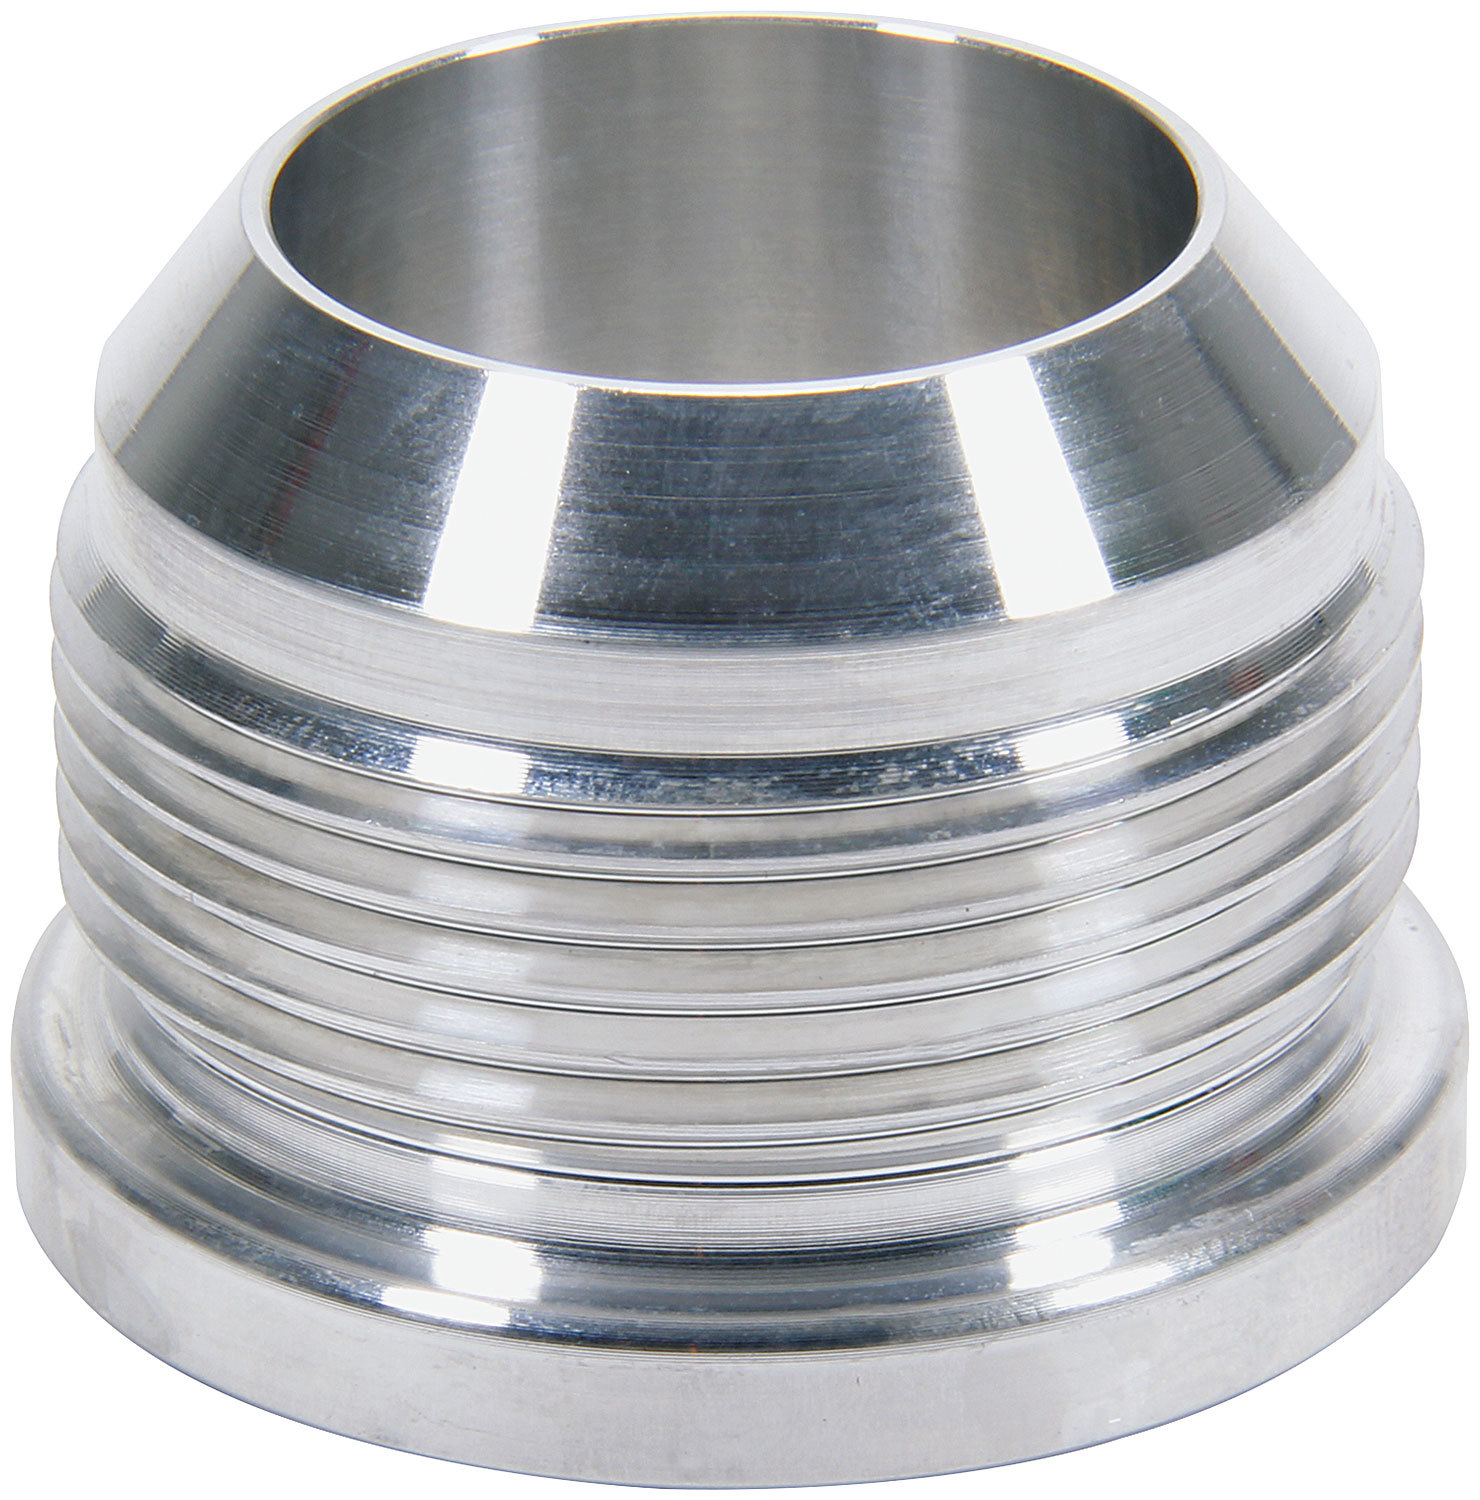 Allstar Performance 50763 Bung, 10 AN Male, Weld-On, Aluminum, Natural, Each